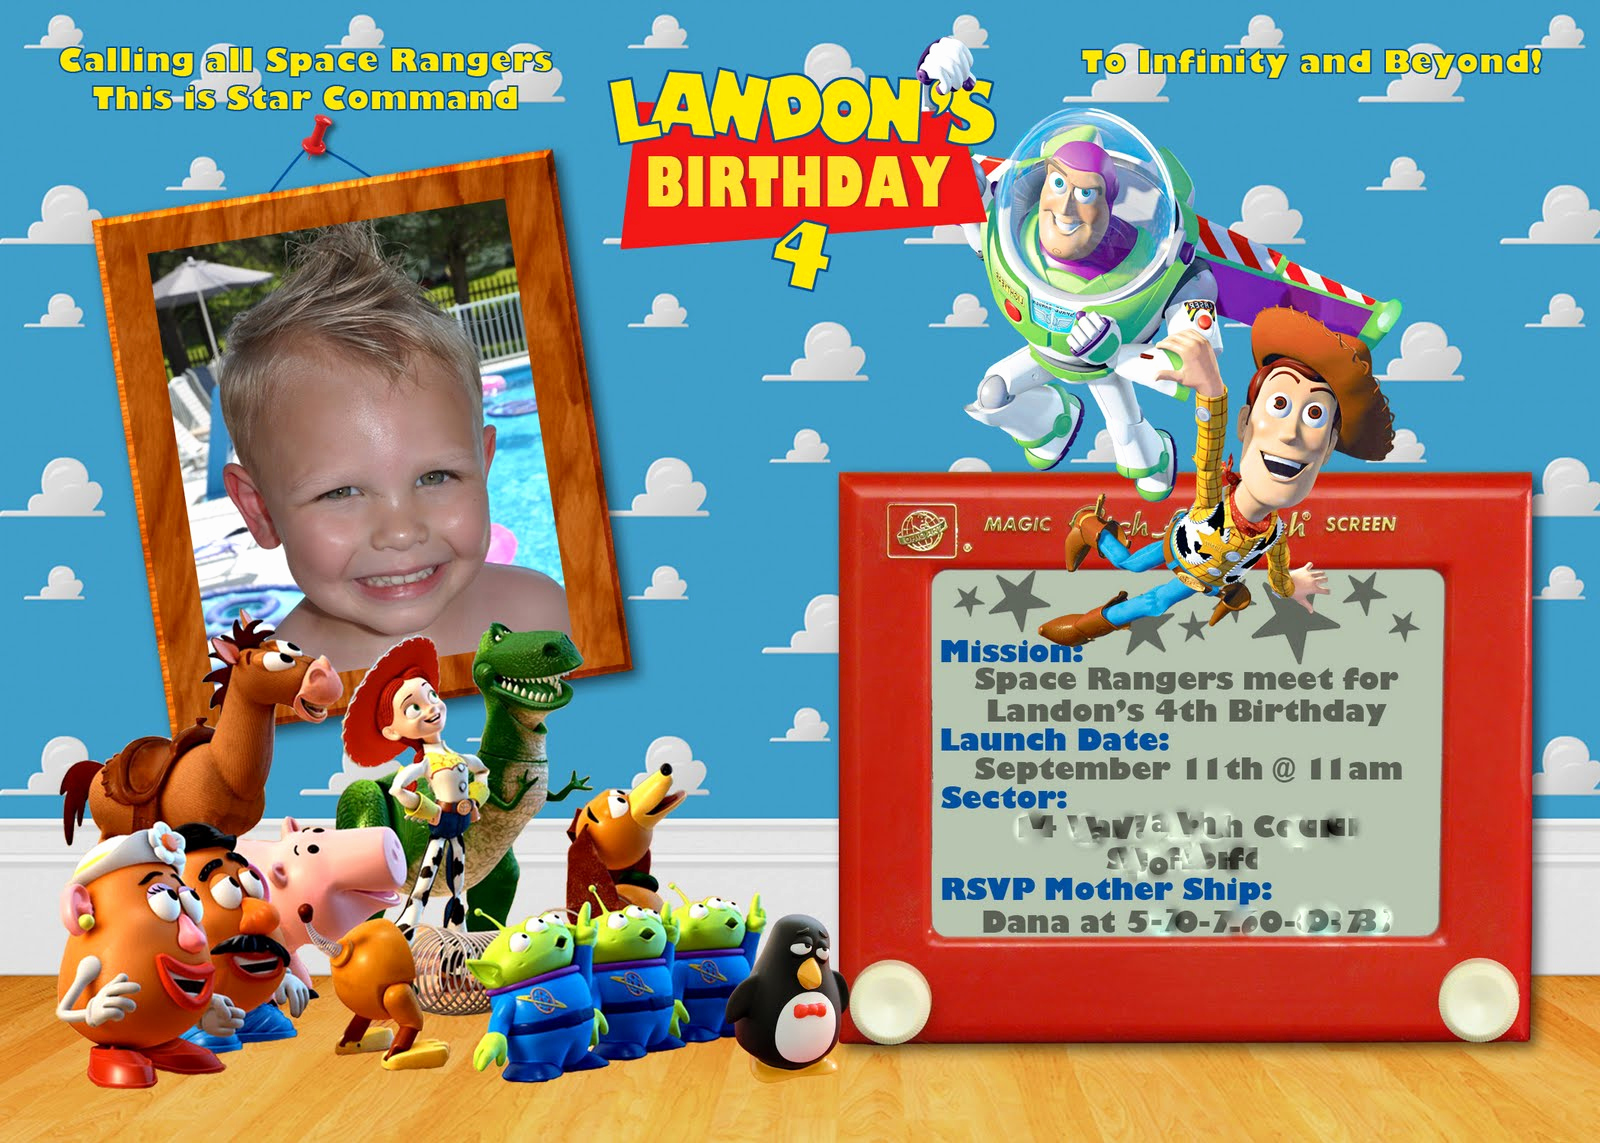 Toy Story Invitation Template Free Best Of 40th Birthday Ideas toy Story Birthday Invitation